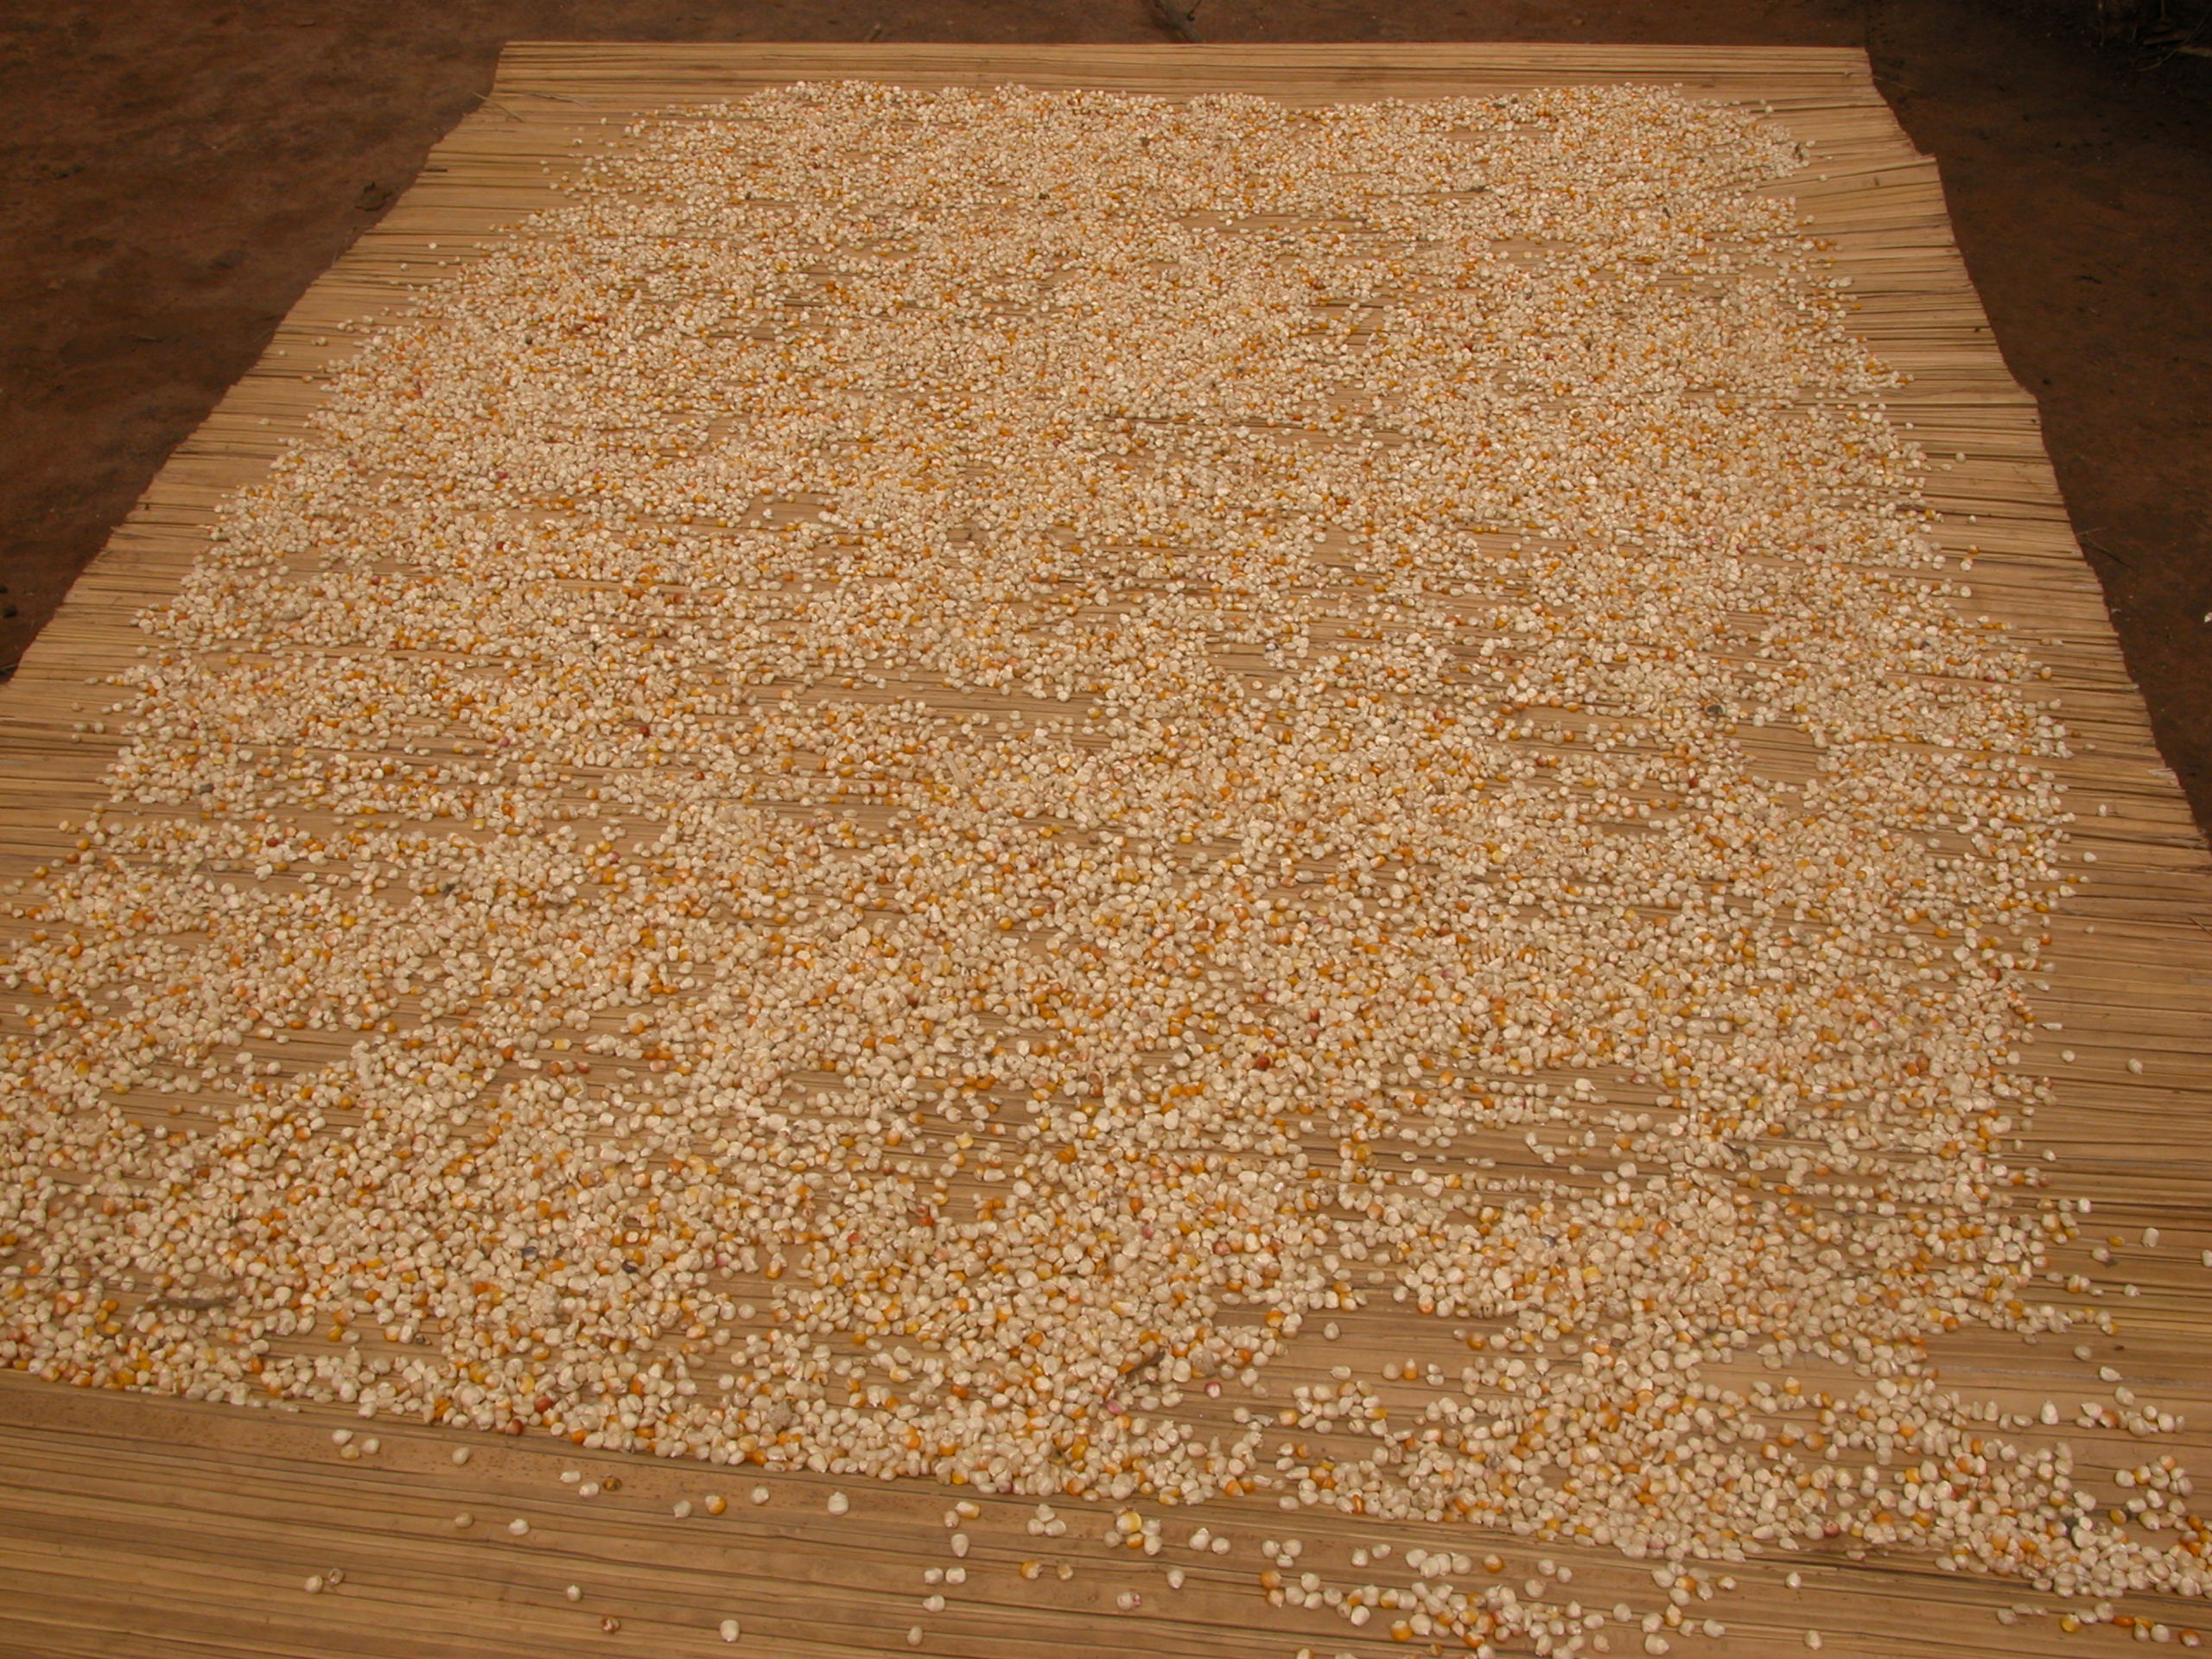 Maize in the market is unaffordable for most Malawians